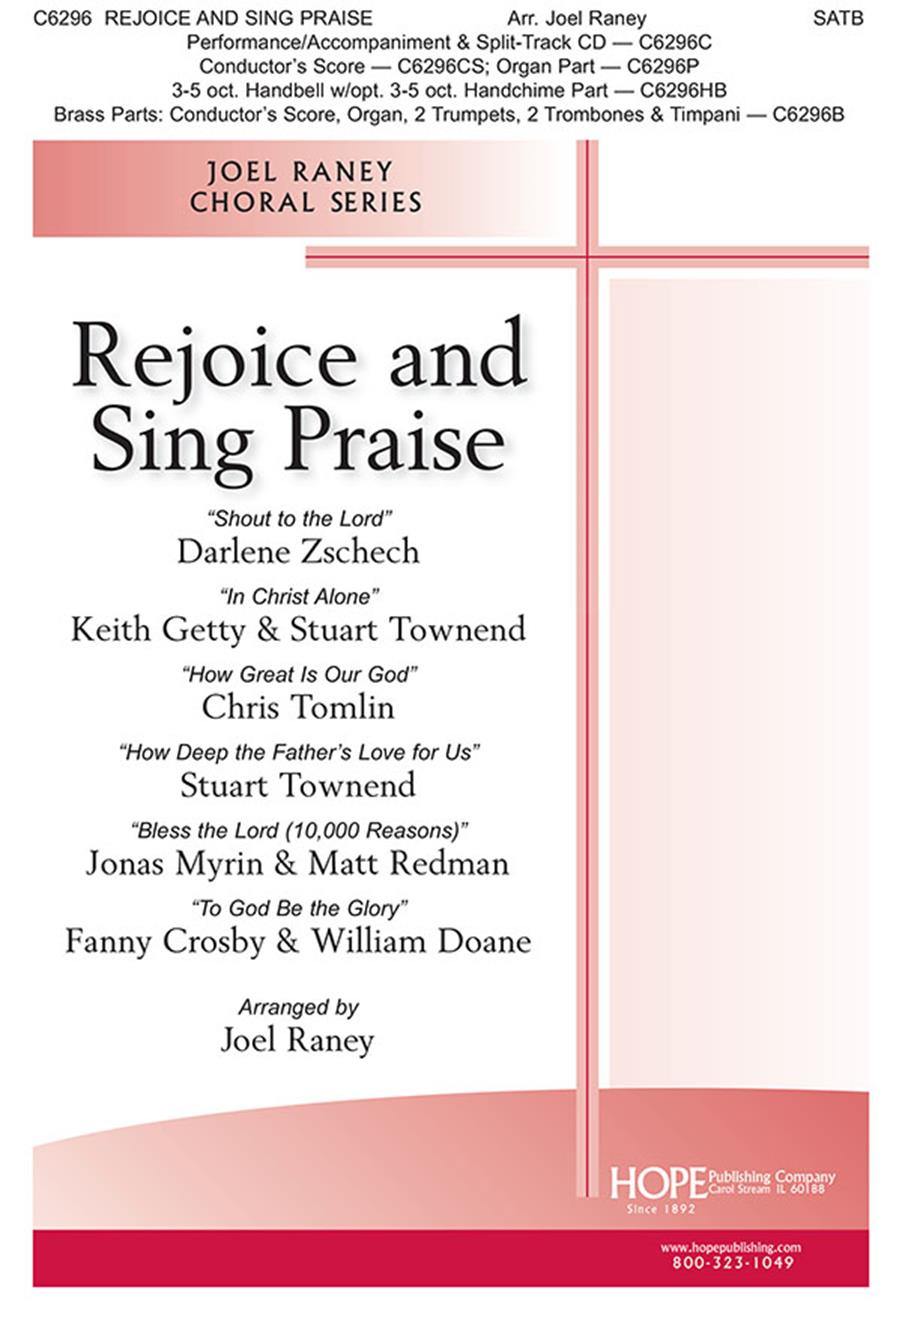 Rejoice and Sing Praise - SATB Cover Image